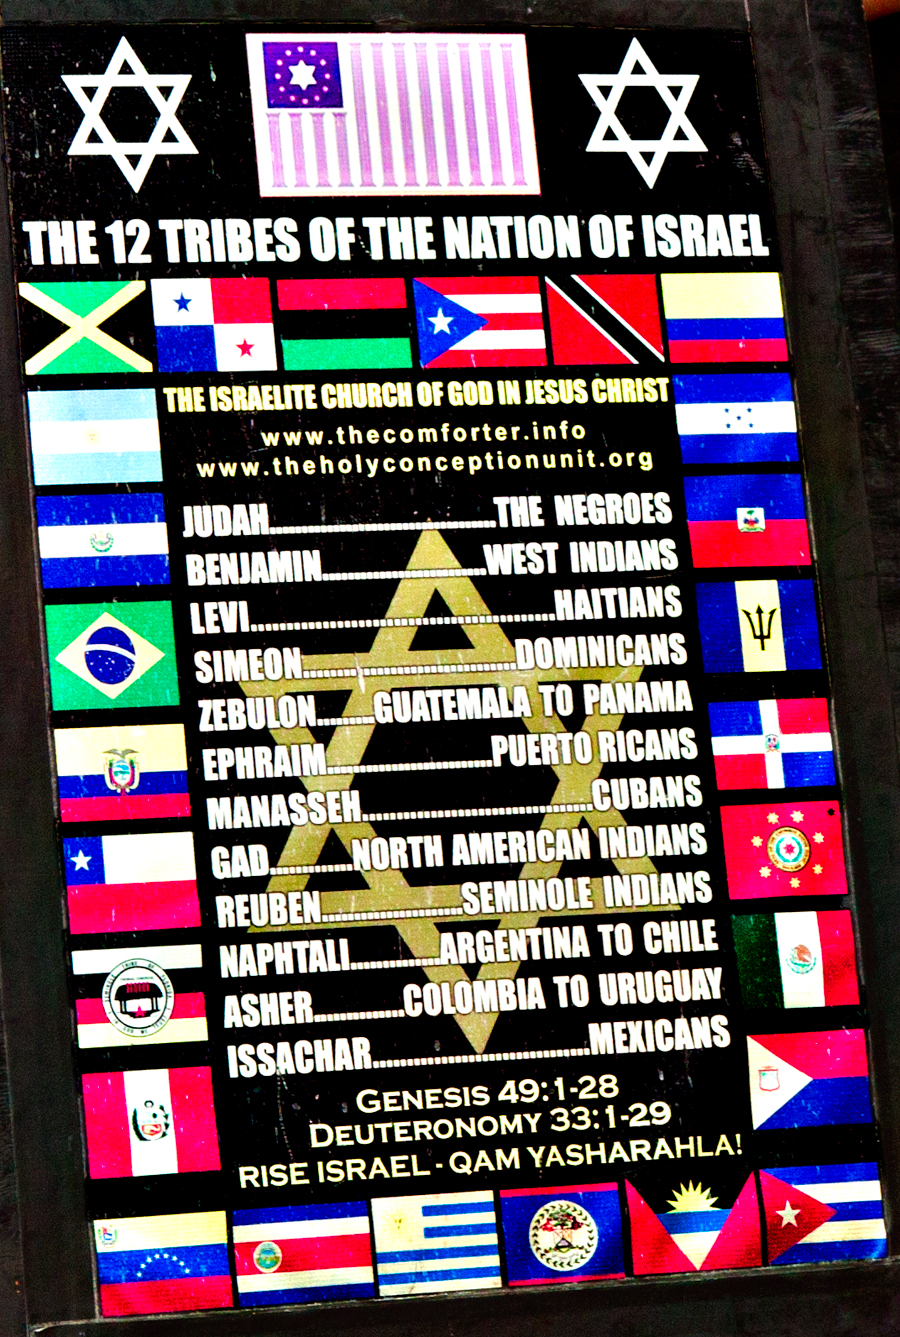 THE-12-TRIBES-OF-ISRAEL-on-7-4-14--Minneapolis-3-(detail)